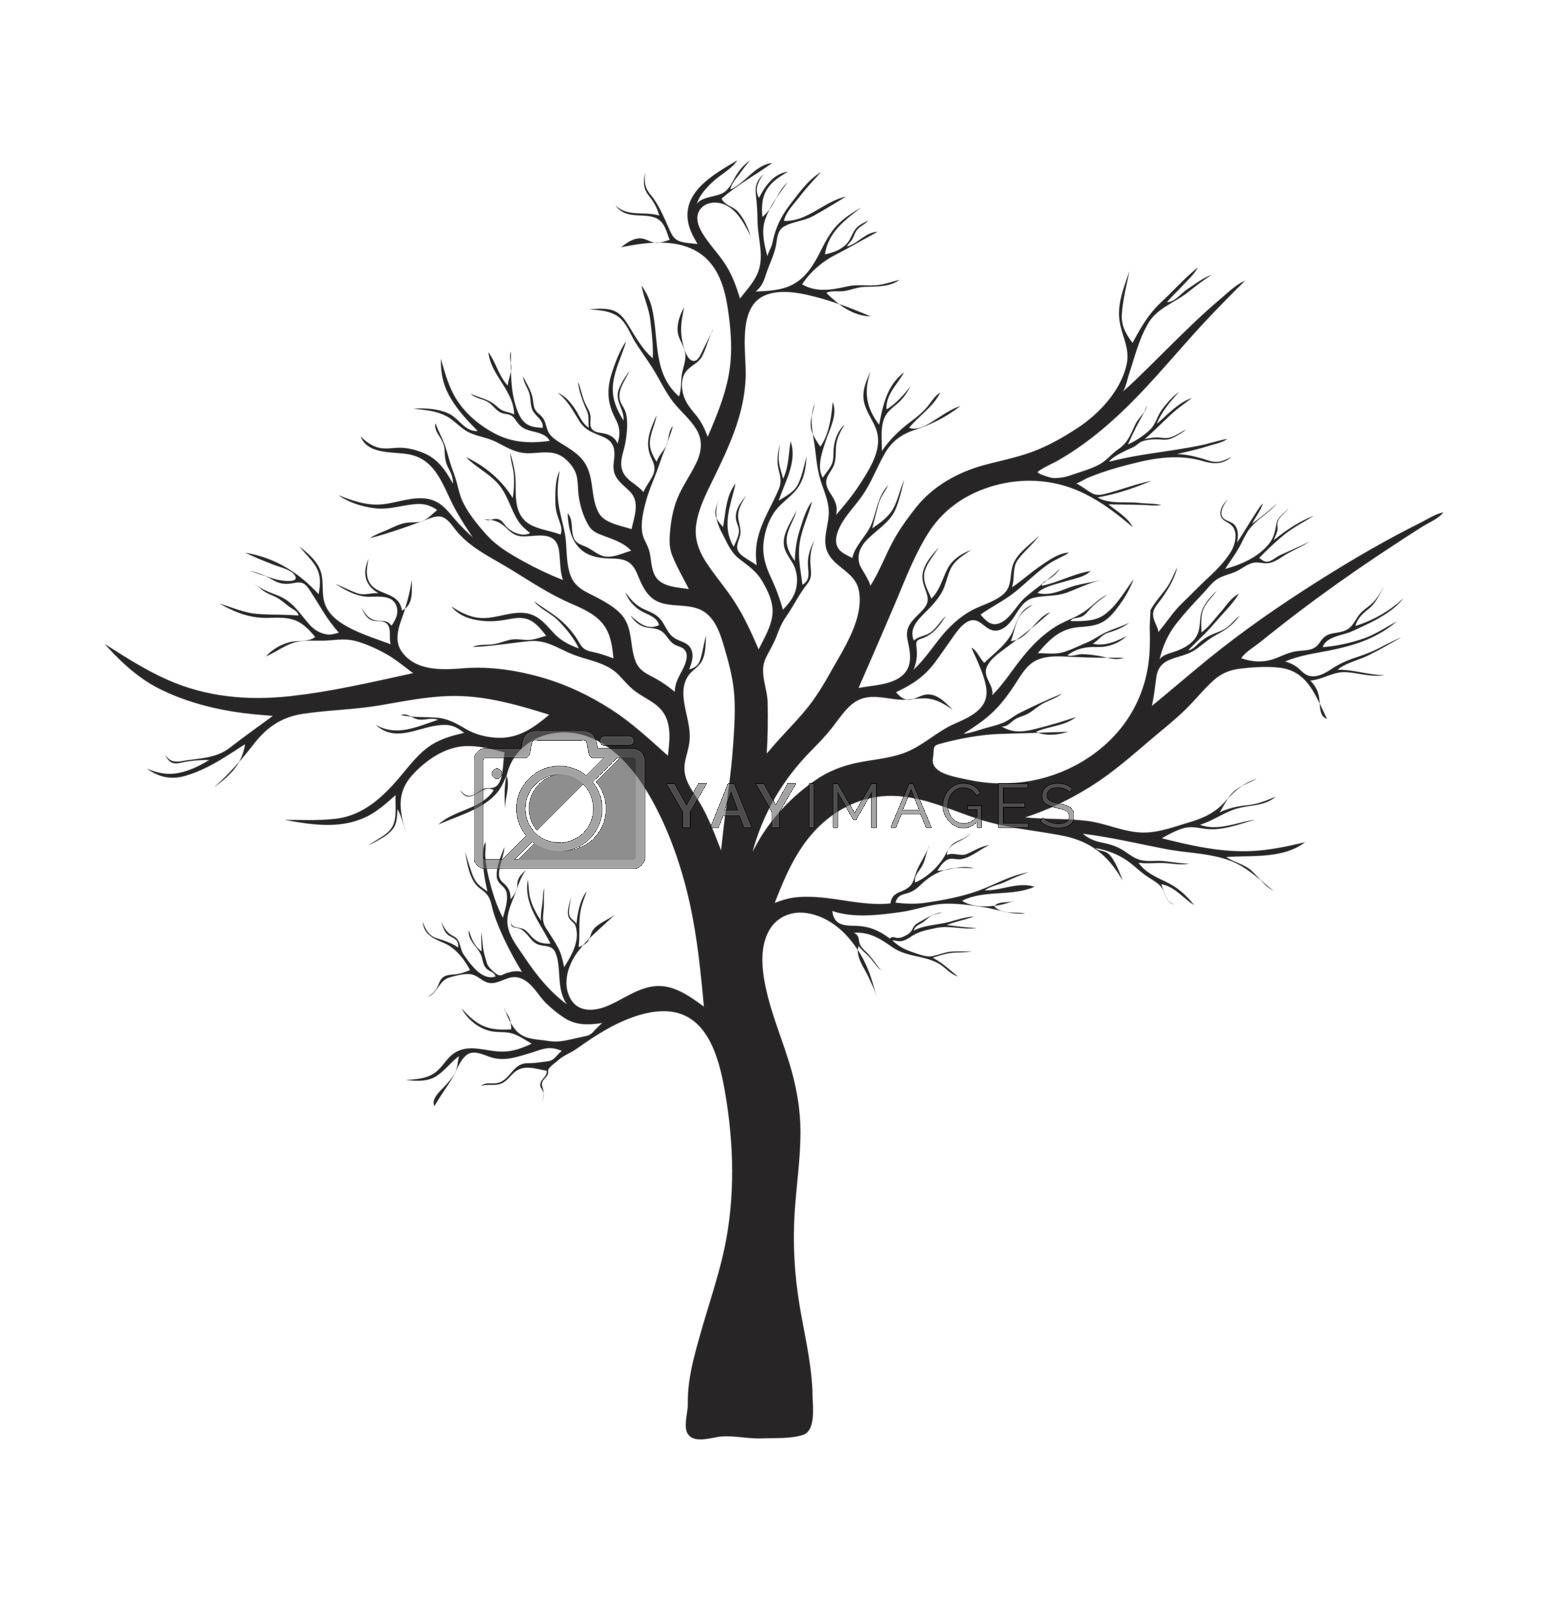 bare tree silhouette vector symbol icon design. Beautiful illustration isolated on white background